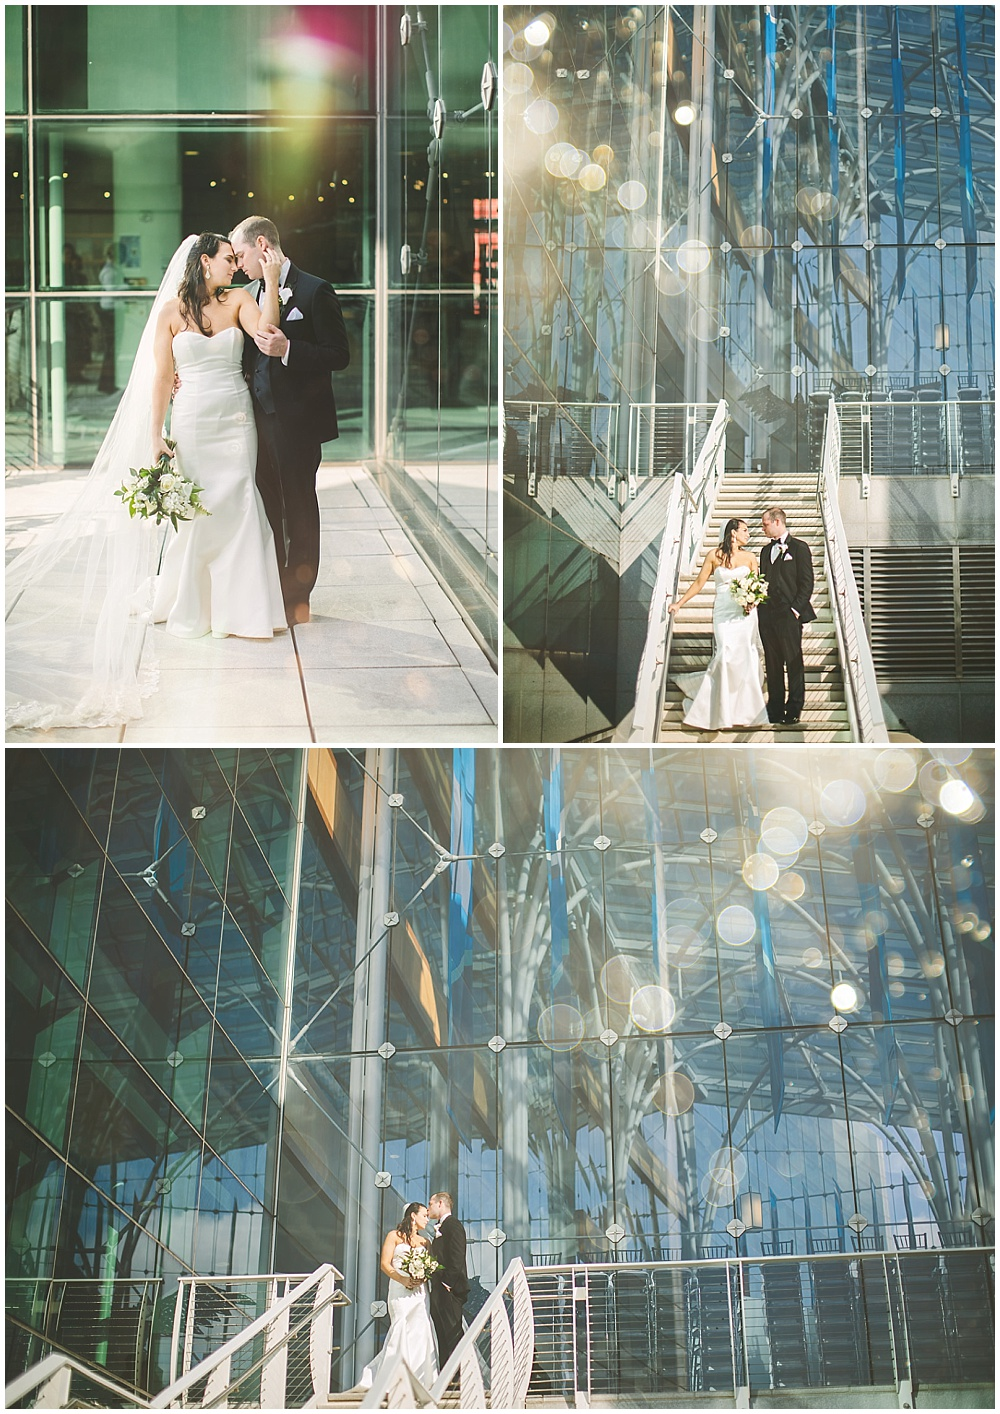 A timeless, modern wedding celebration at the Indianapolis Public Library. Bride and groom portraits in front of an all-glass structure. | Jessica Dum Wedding Coordination